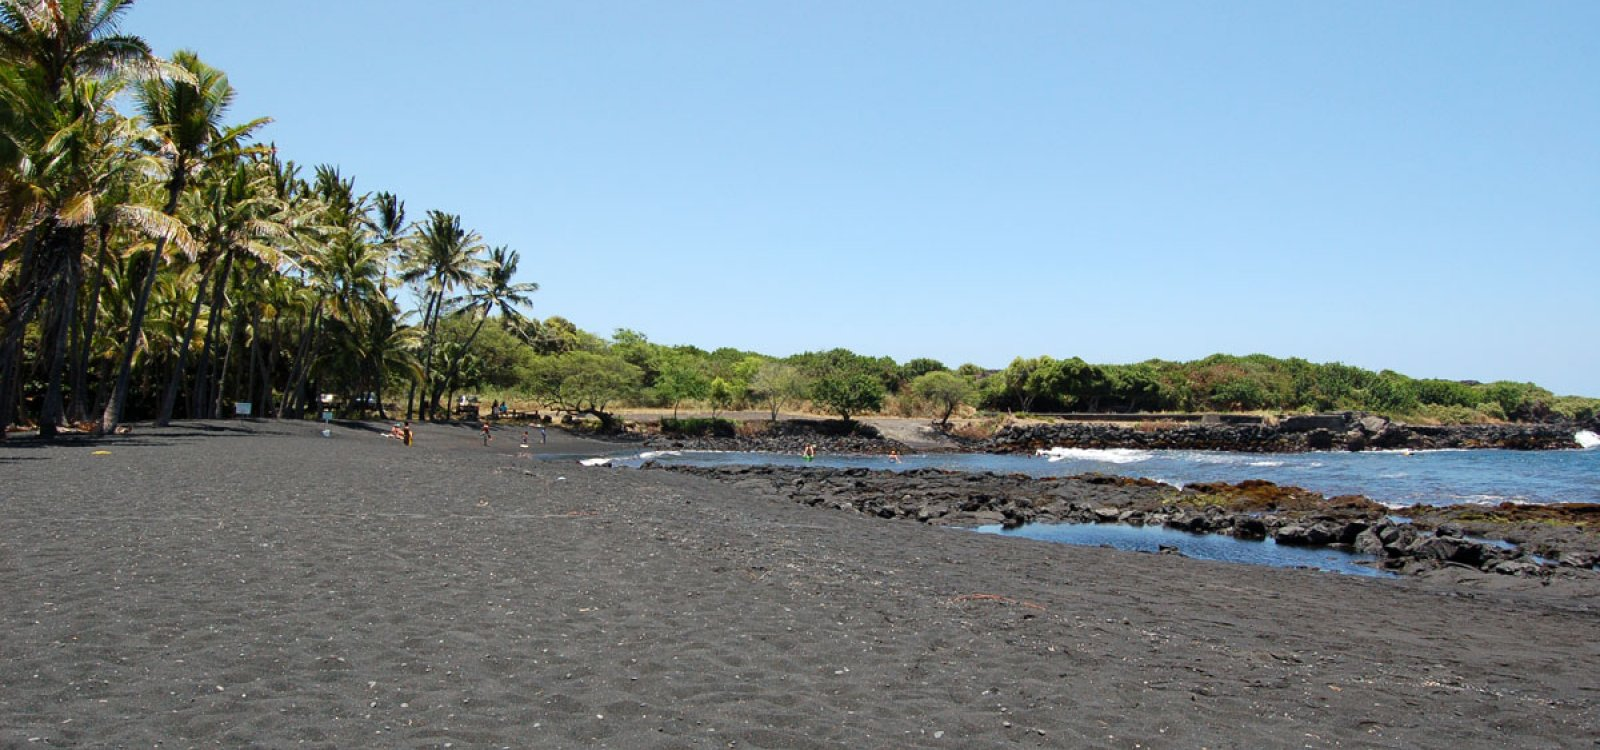 Punaluu Black Sand Beach Photo Gallery